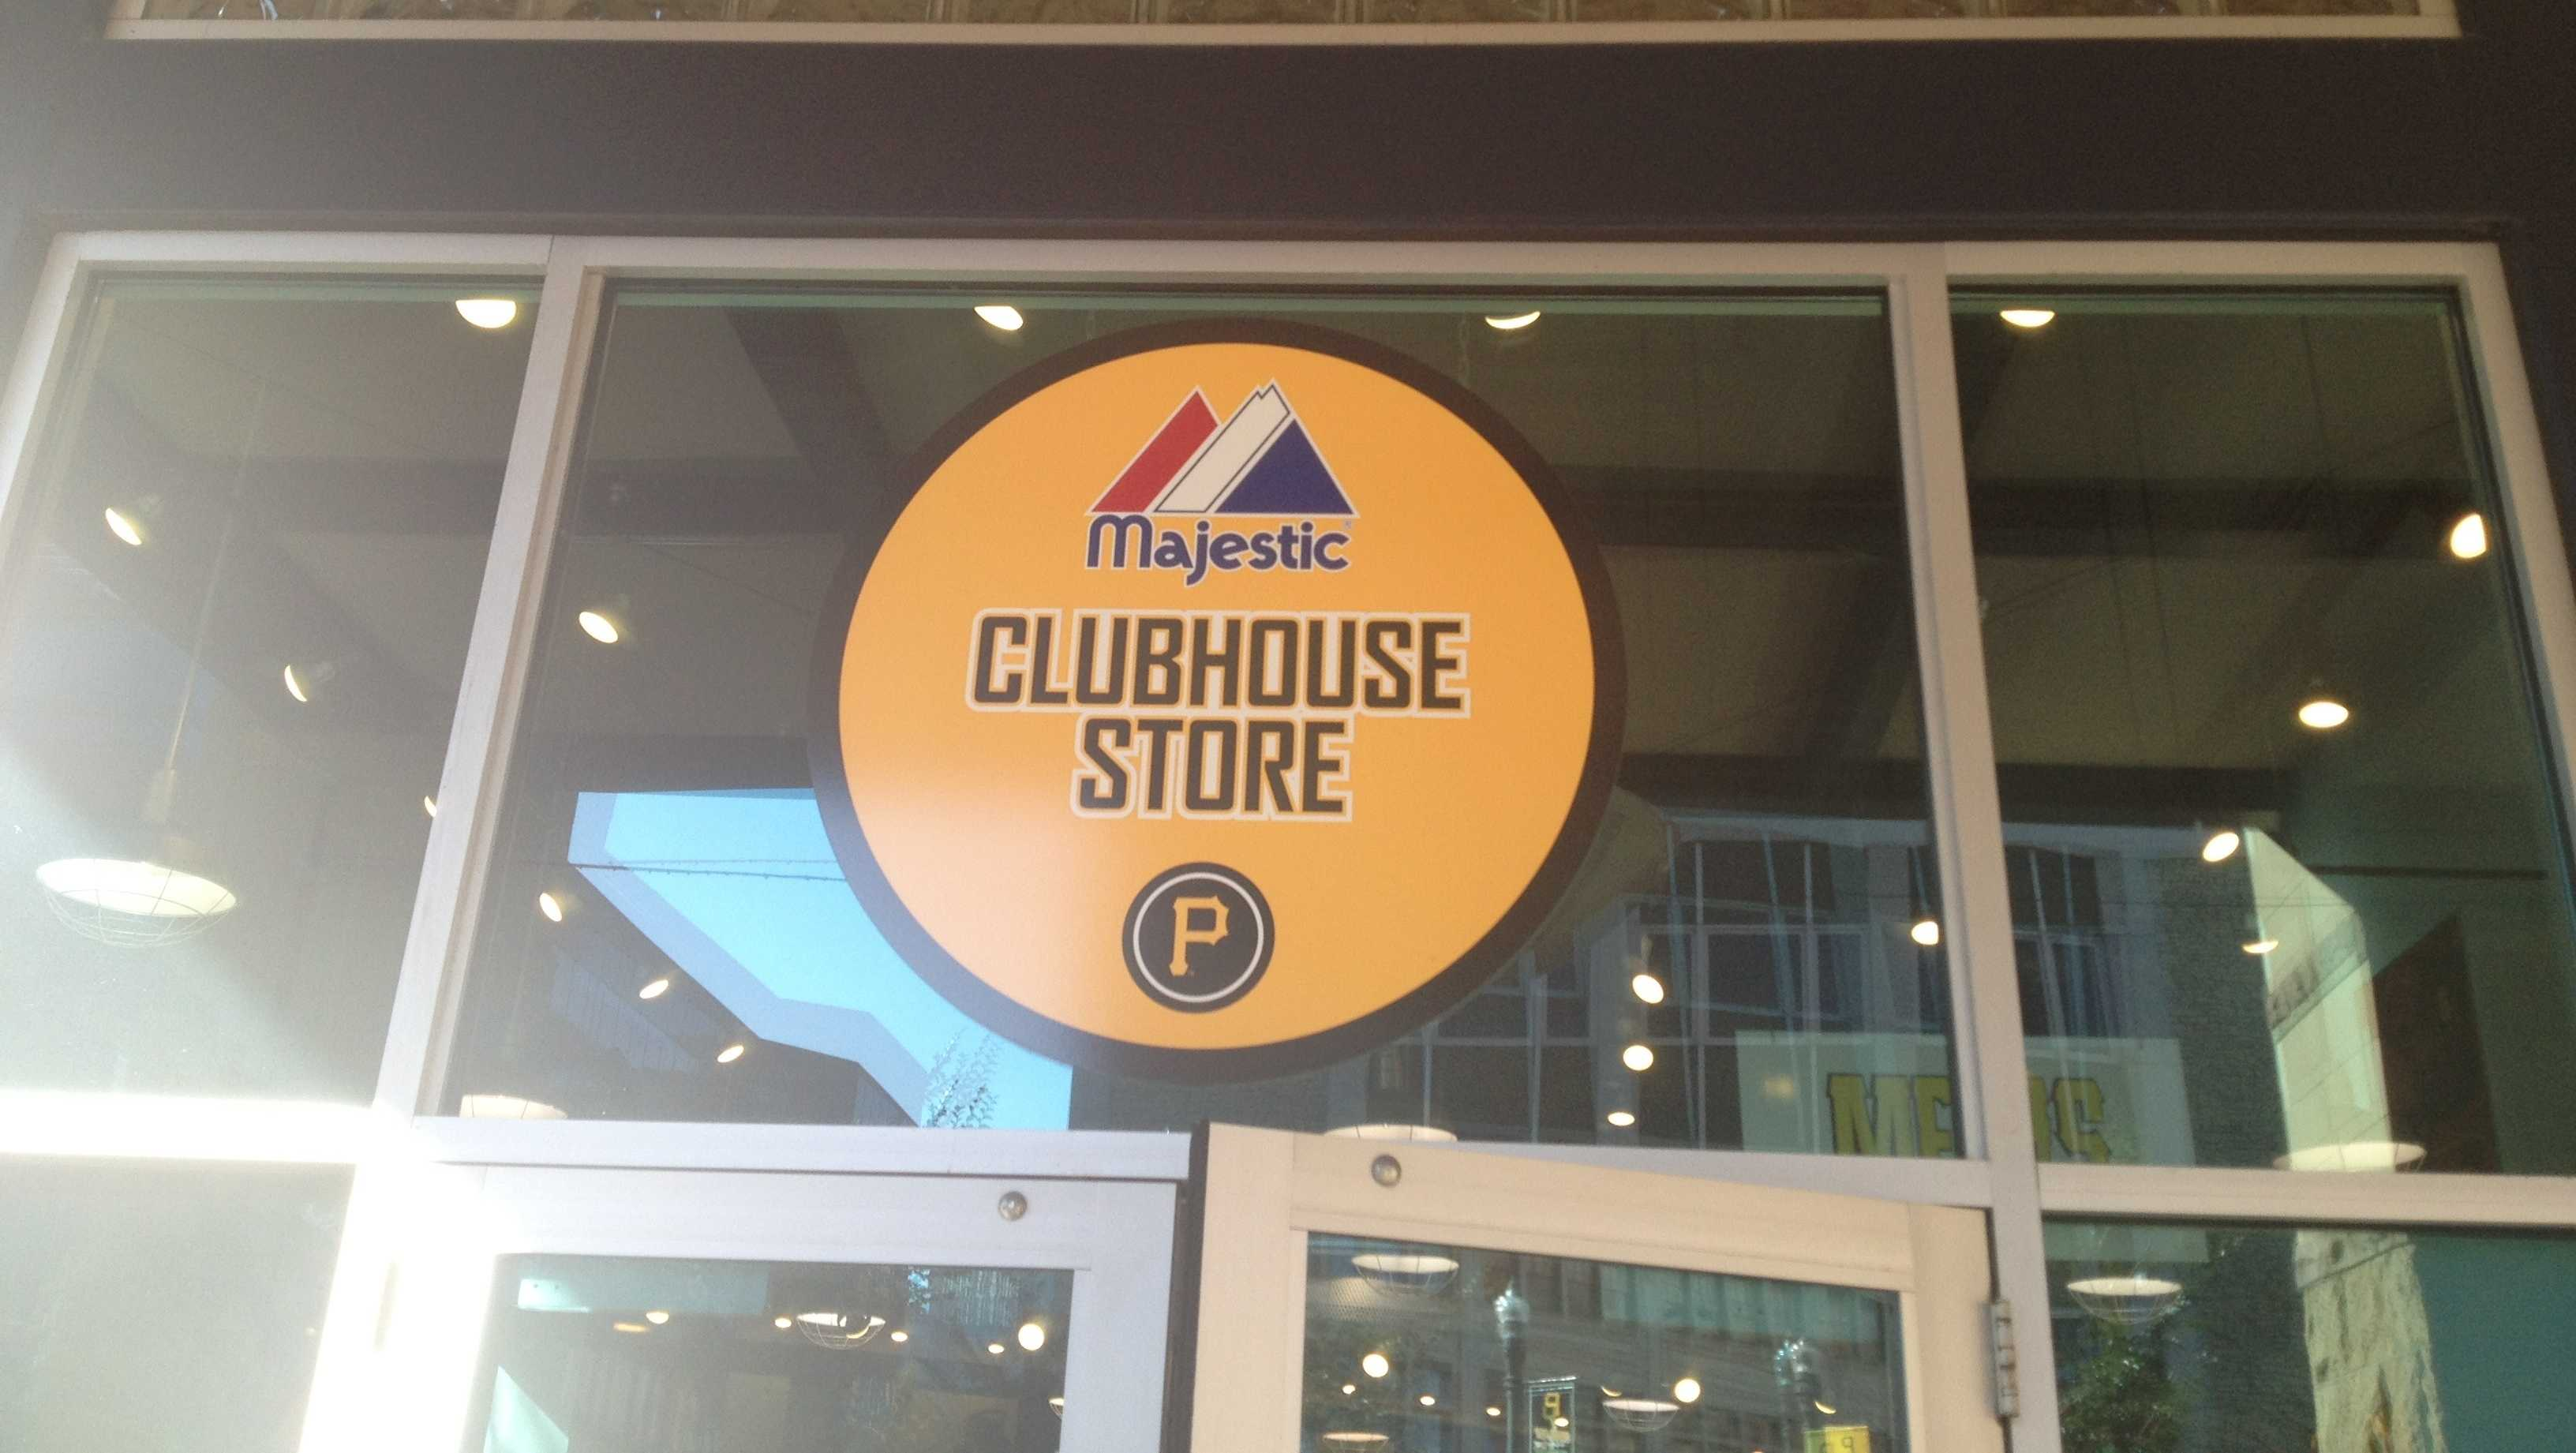 The Majestic Clubhouse Store at PNC Park